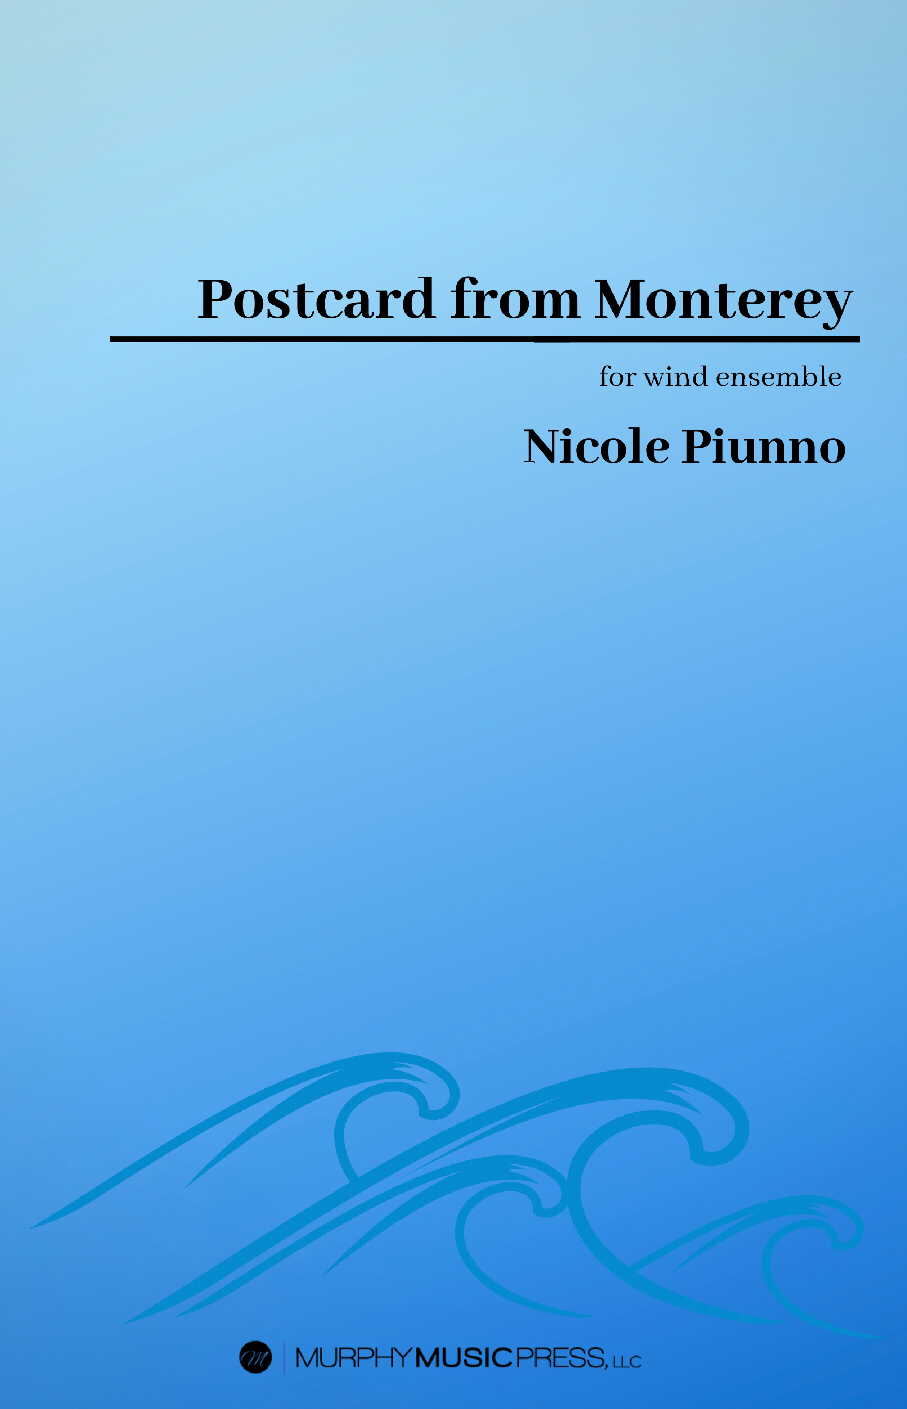 Postcard From Monterey  by Nicole Piunno